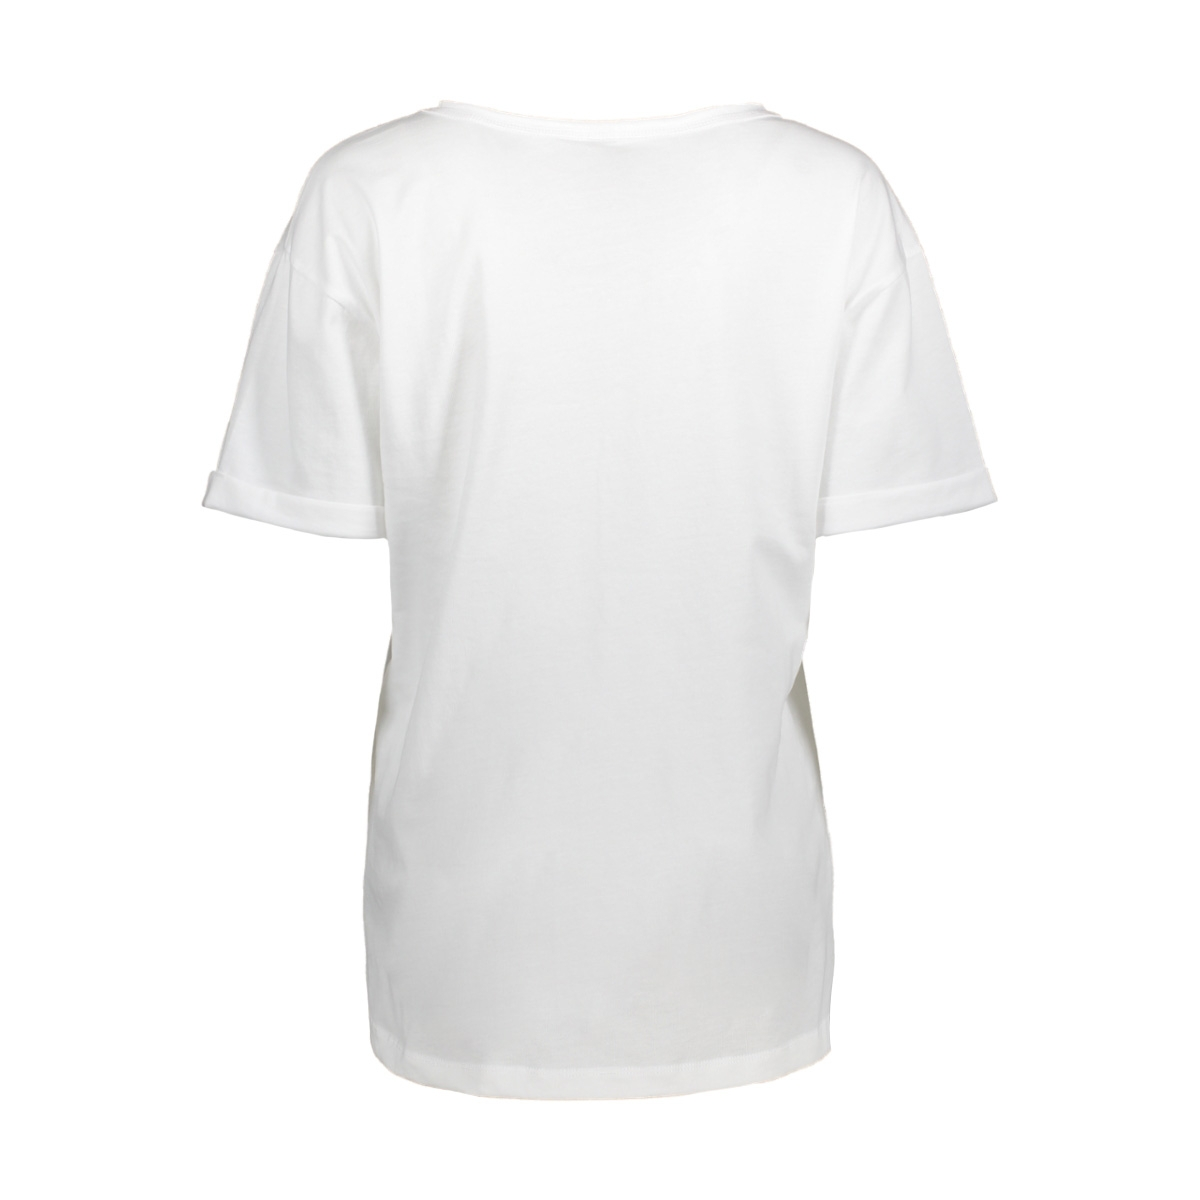 20-740-7103 10 days t-shirt white